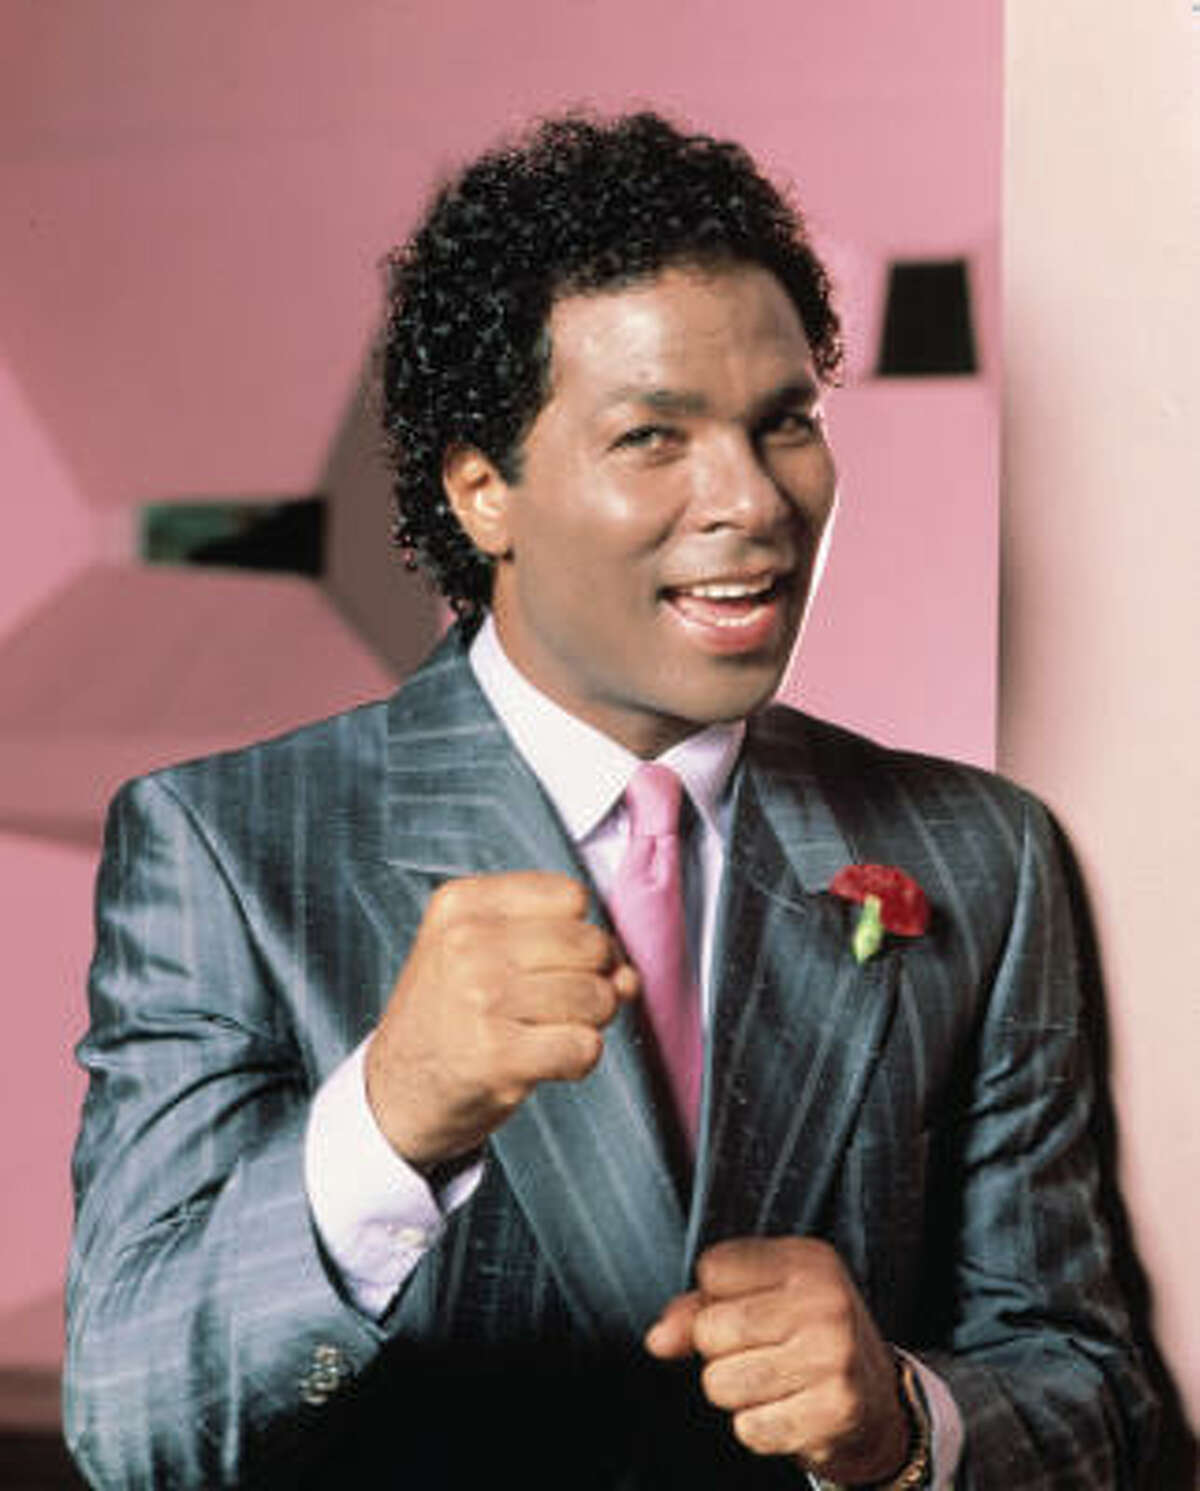 In the 1980s, Philip Michael Thomas made the ladies swoon weekly starring in the hit TV series Miami Vice.